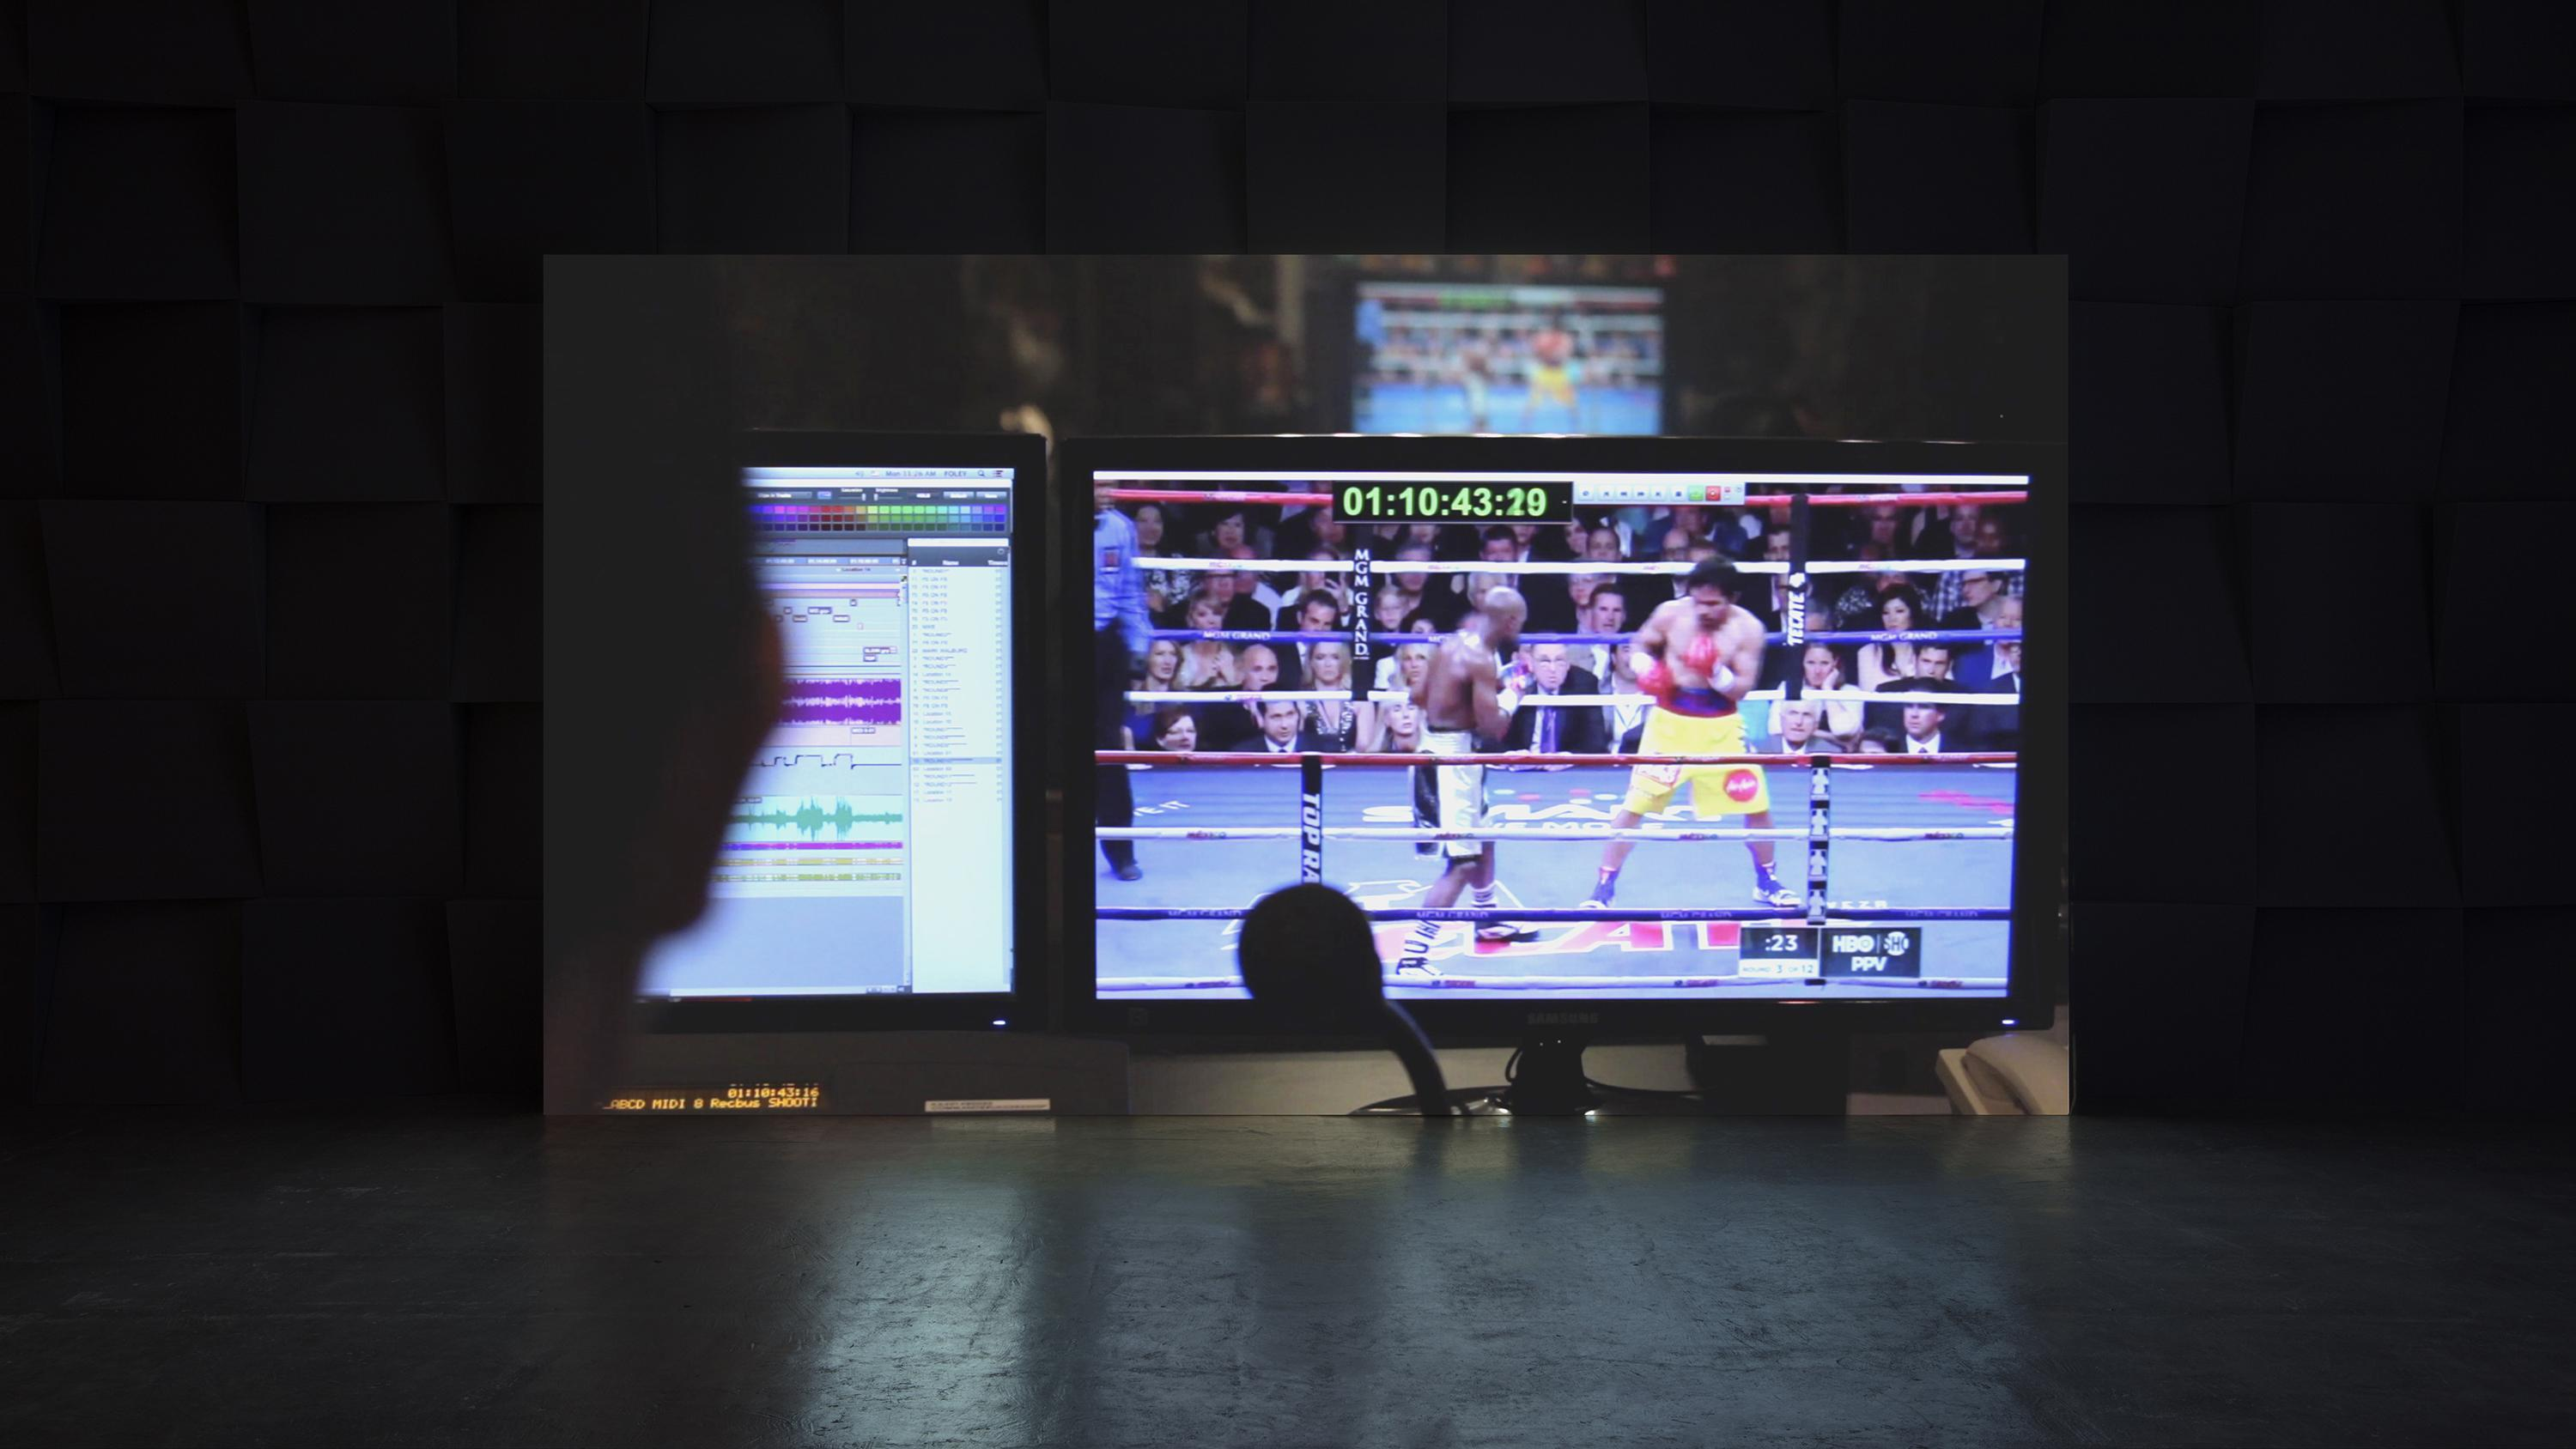 Projected on the wall of a dark room is the image of two monitors, one playing a boxing match, the other showing multiple bars of sound waves.